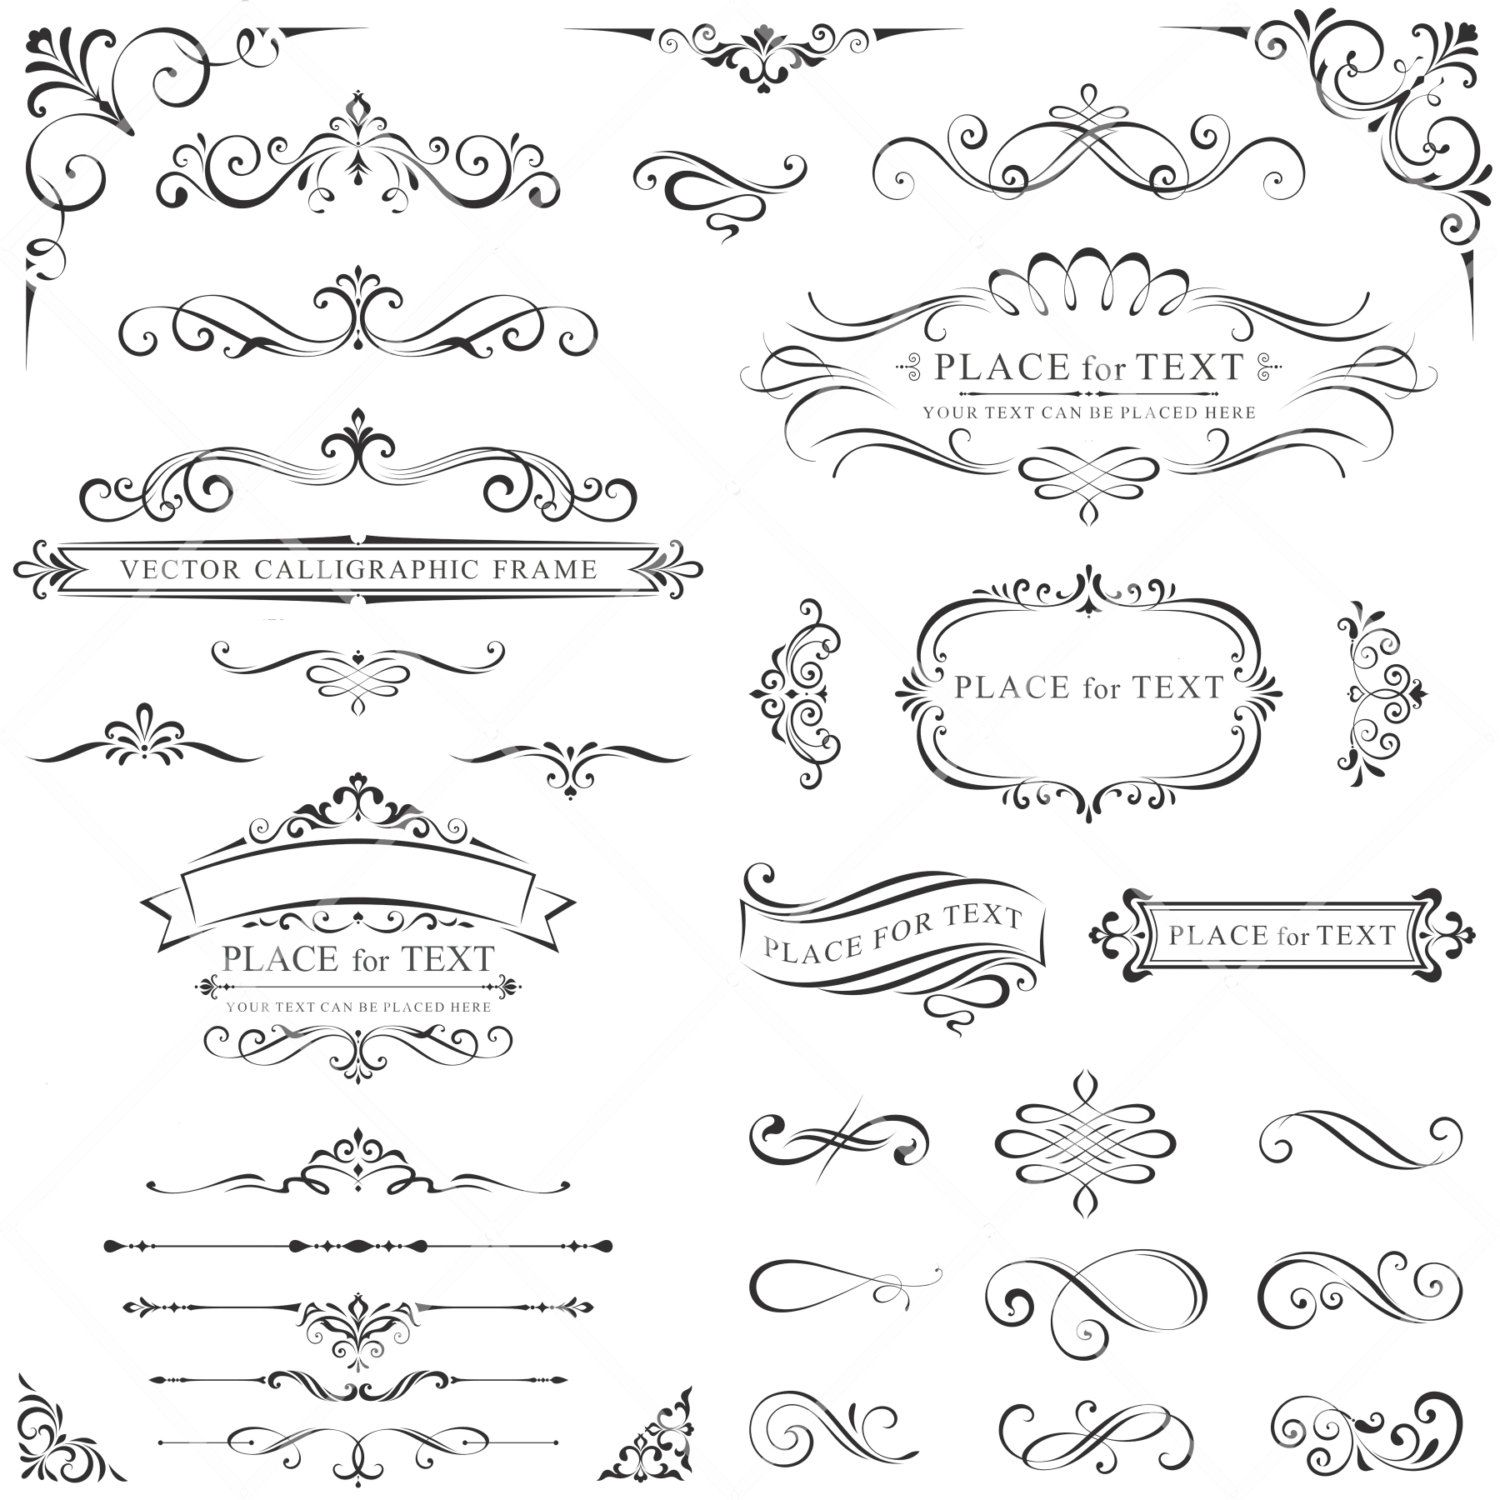 free wedding clip art accents - photo #43